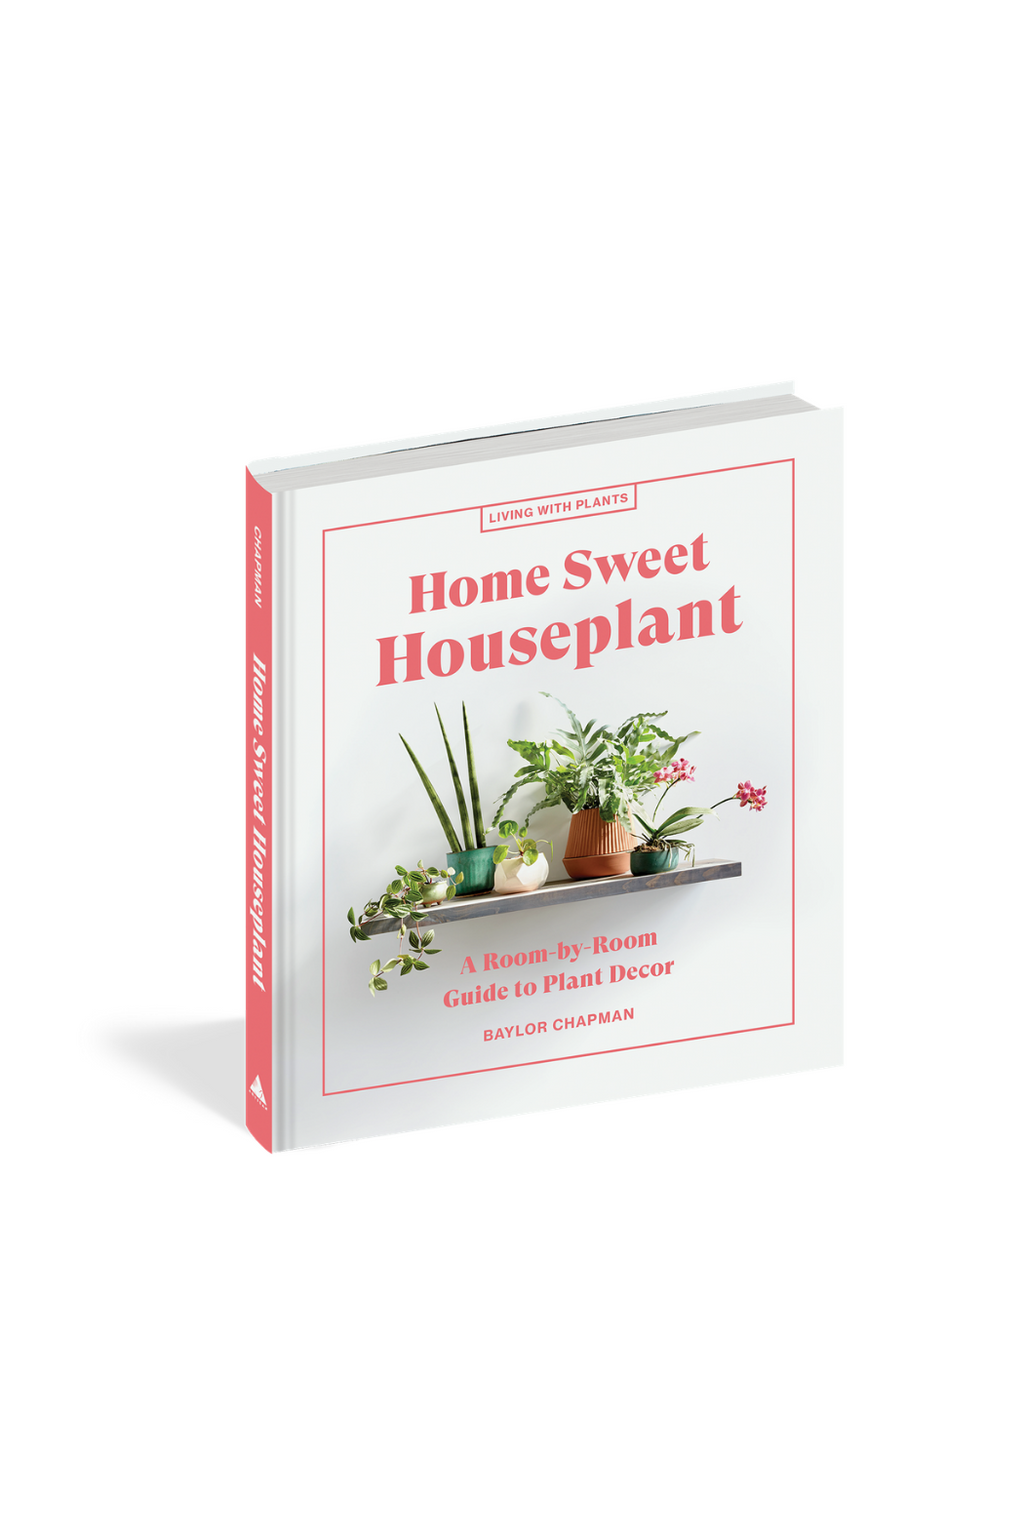 Home Sweet Houseplant: A Room-By-Room Guide to Plant Decor  By Baylor Chapman